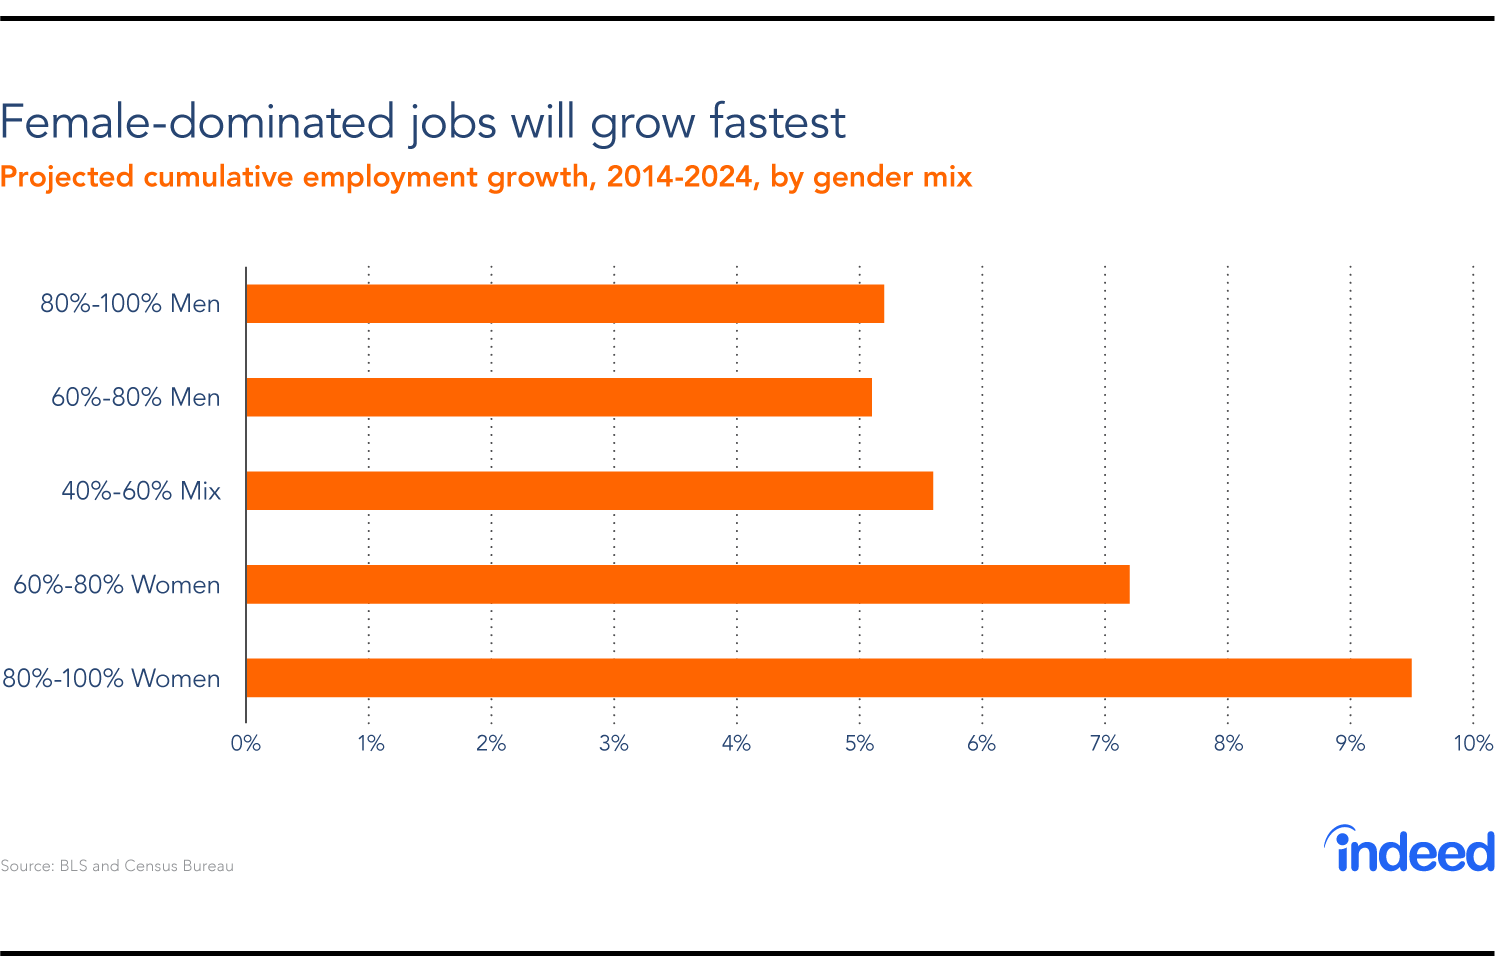 female-dominated jobs will grow fastest